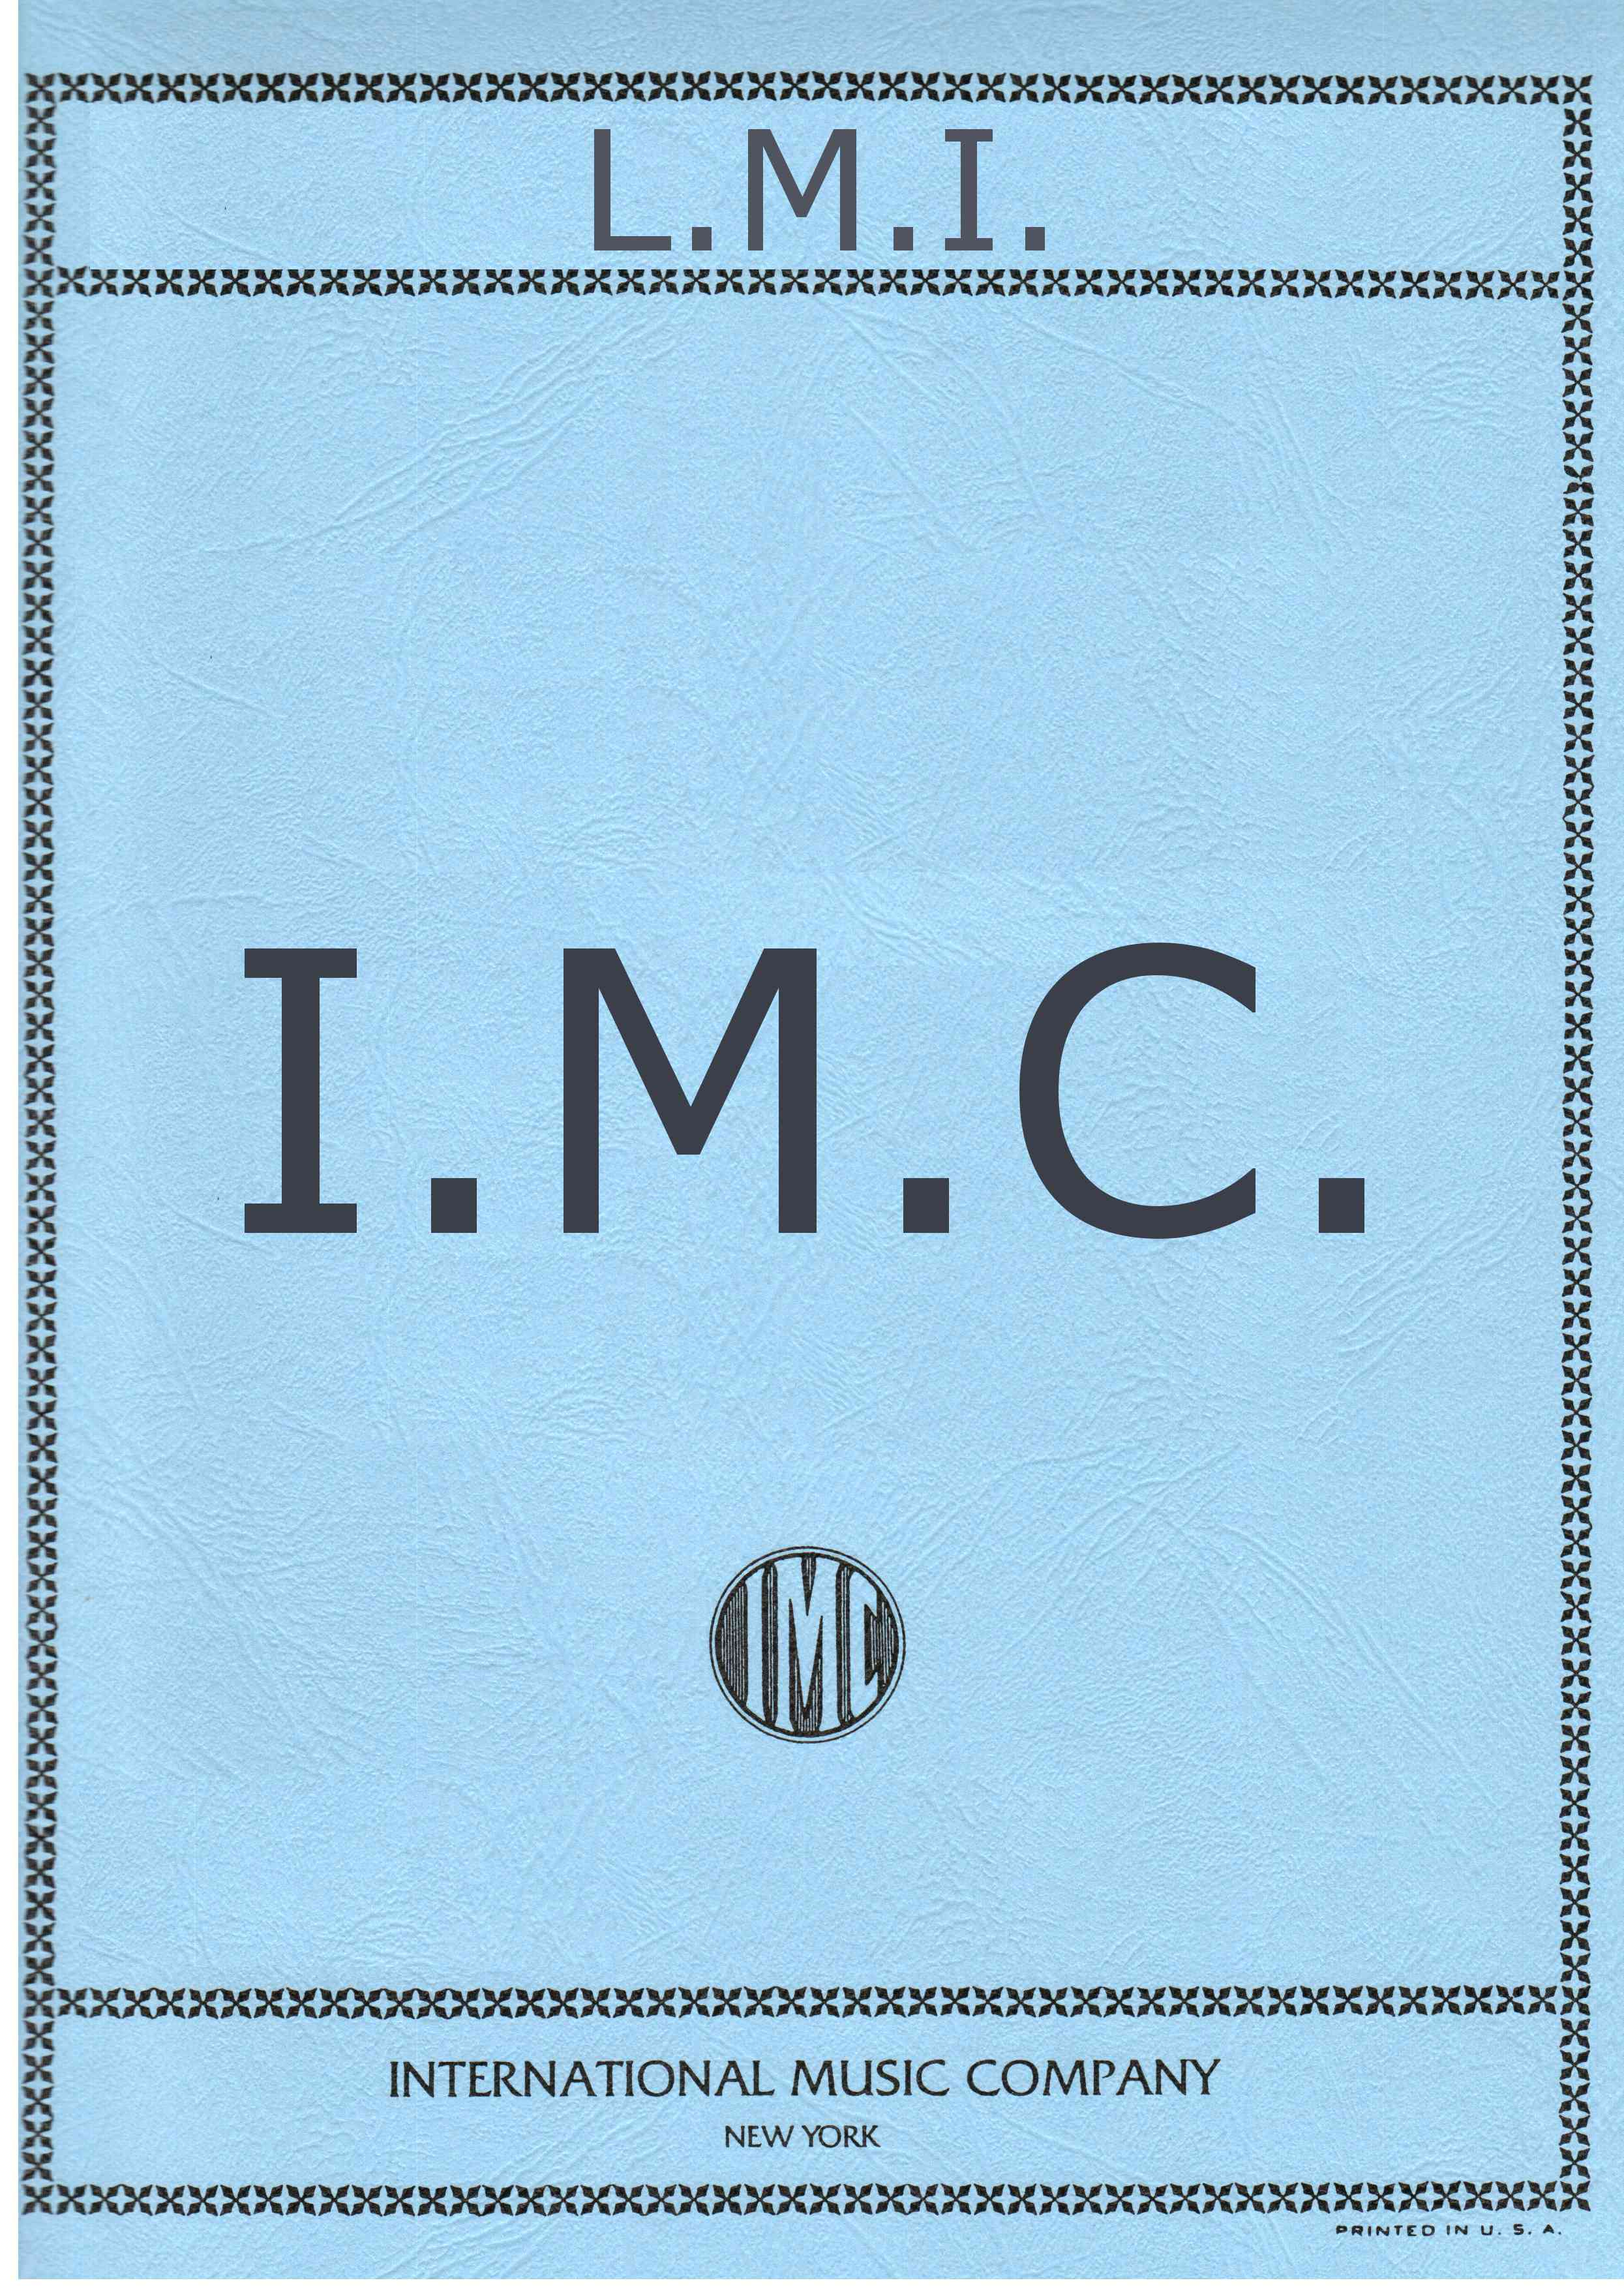 IMC (International Music Company)